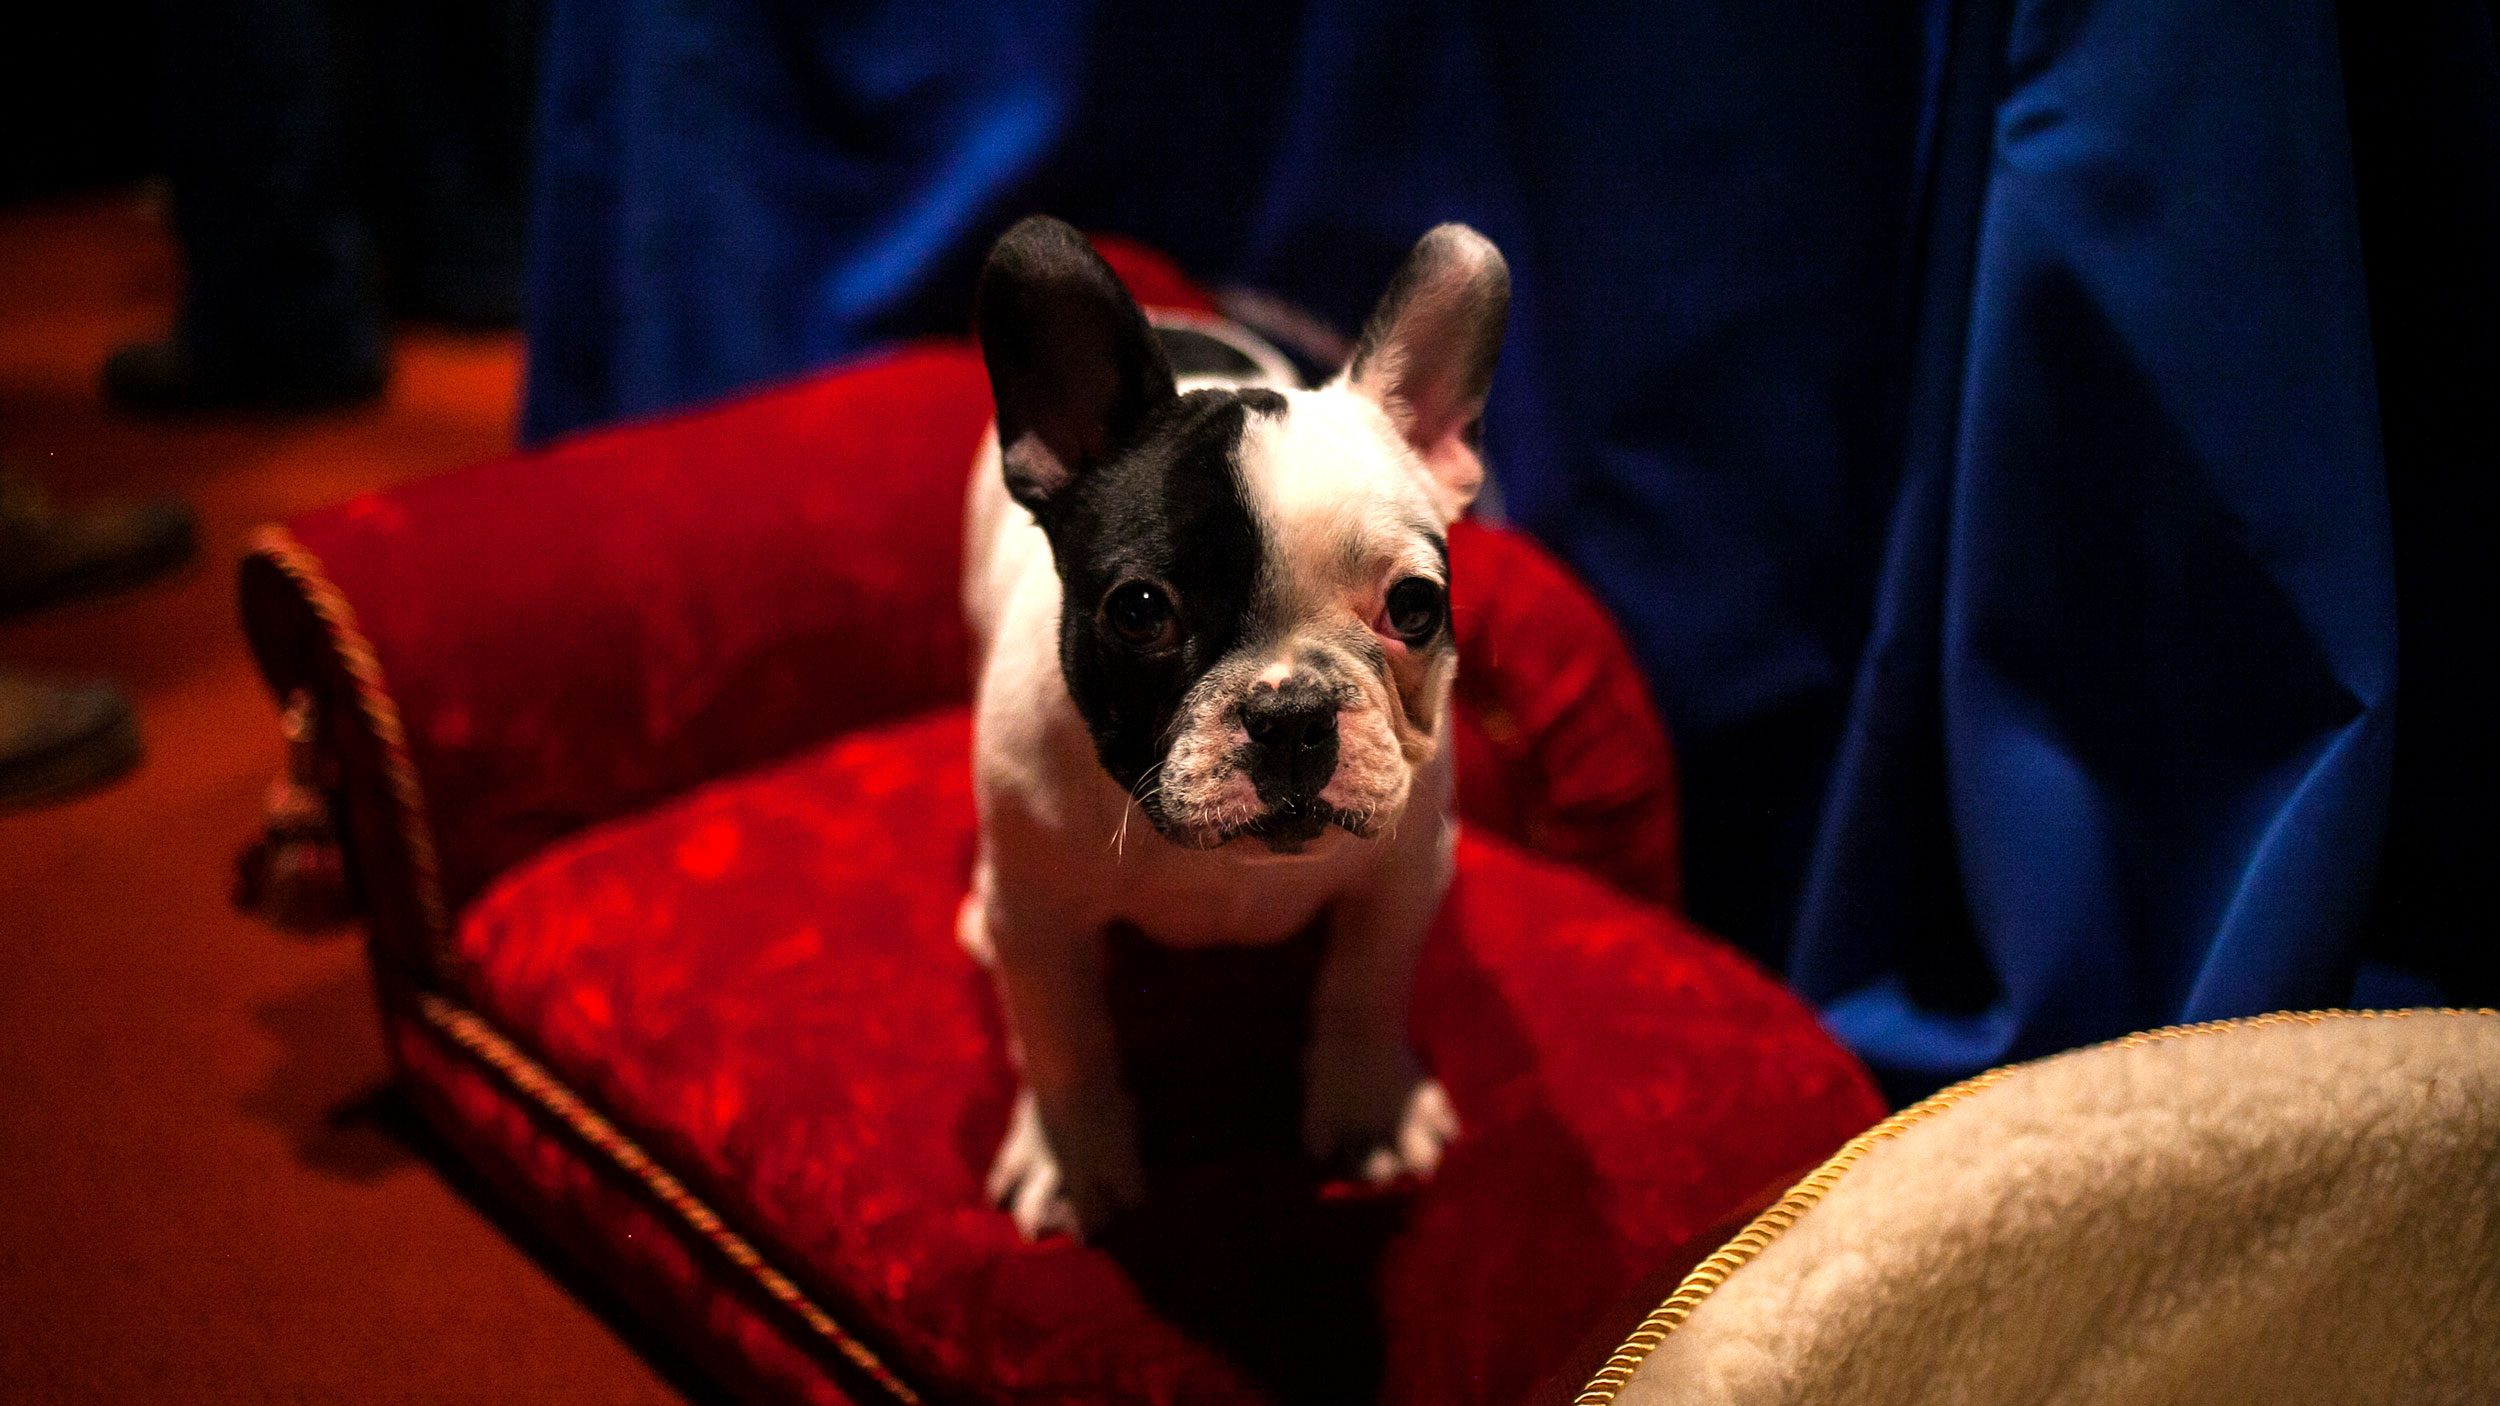 A French bulldog puppy looks at the camera